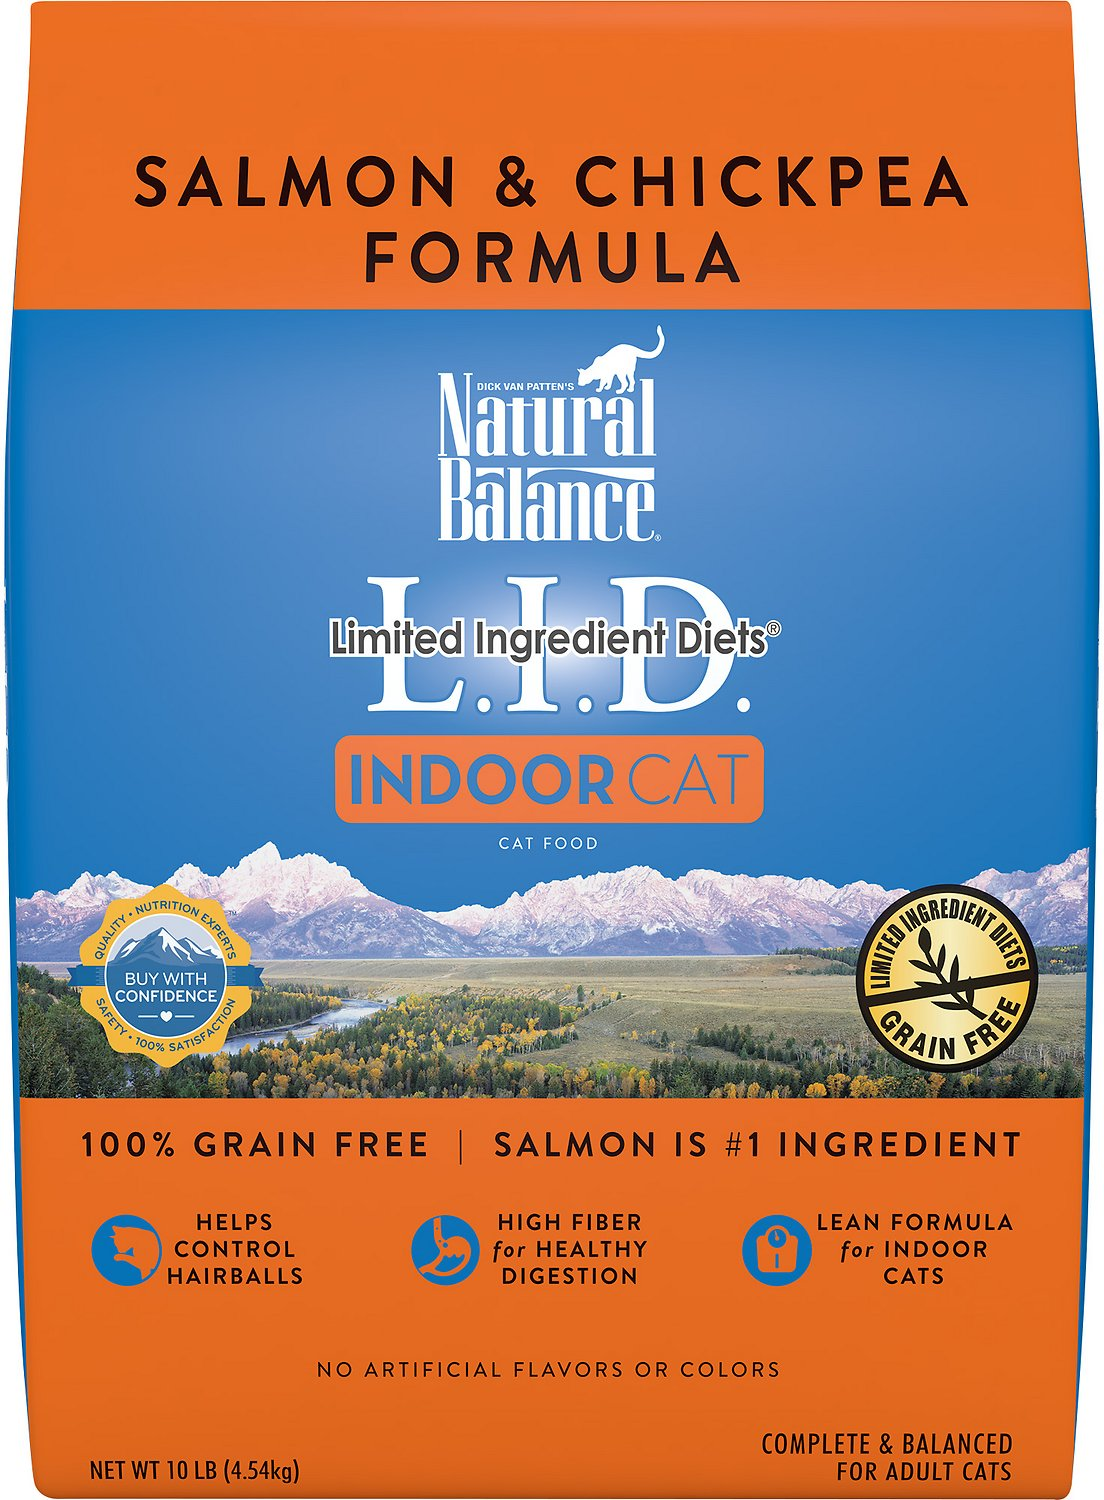 Natural Balance L.I.D. Limited Ingredient Diets Indoor Grain-Free Salmon & Chickpea Formula Dry Cat Food Image